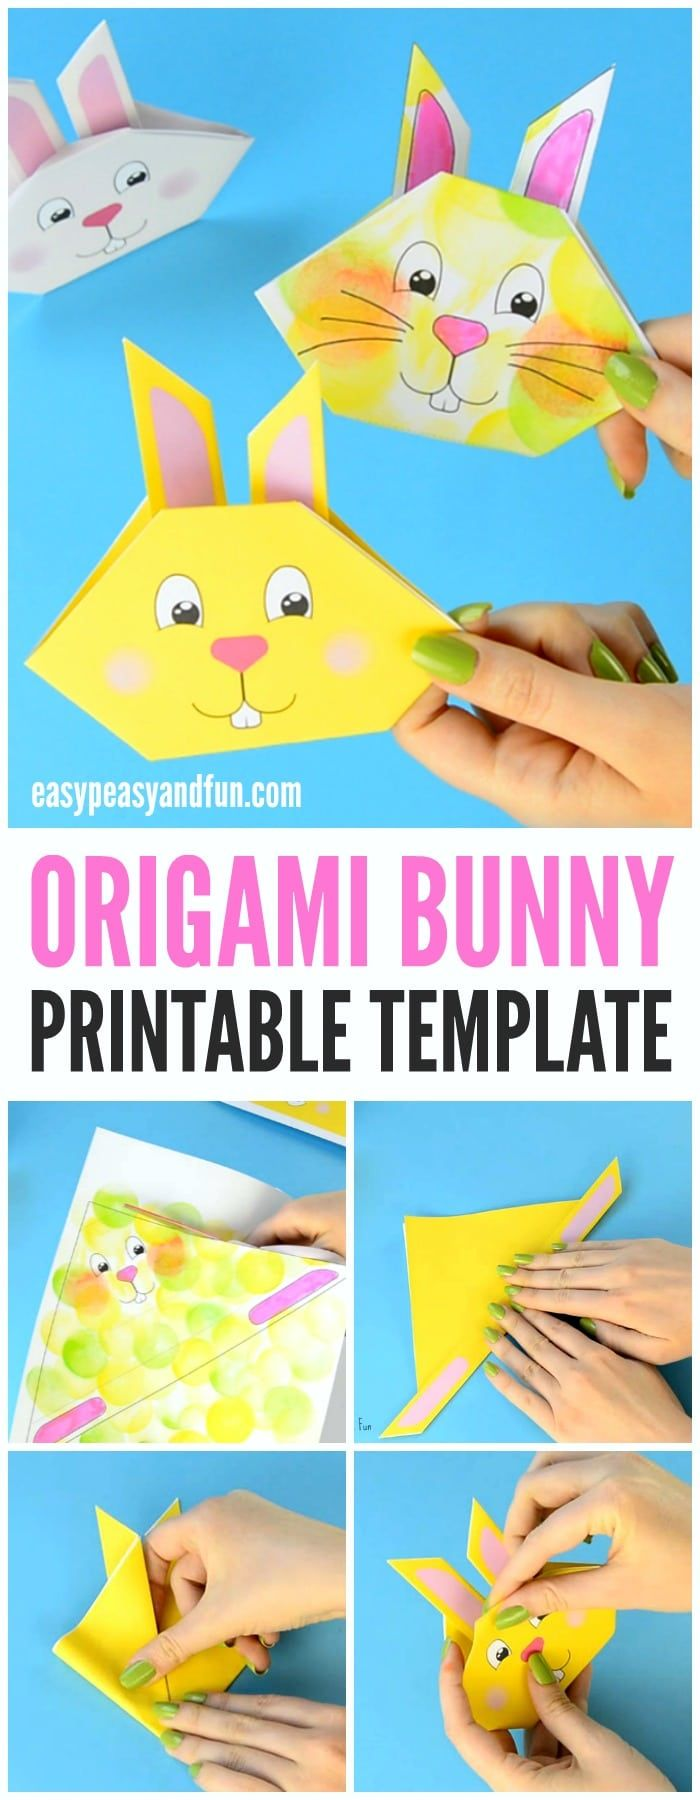 Cute-Origami-Bunny-Template-Craft-Idea-for-Kids-to-Make.jpg 700×1.800 piksel